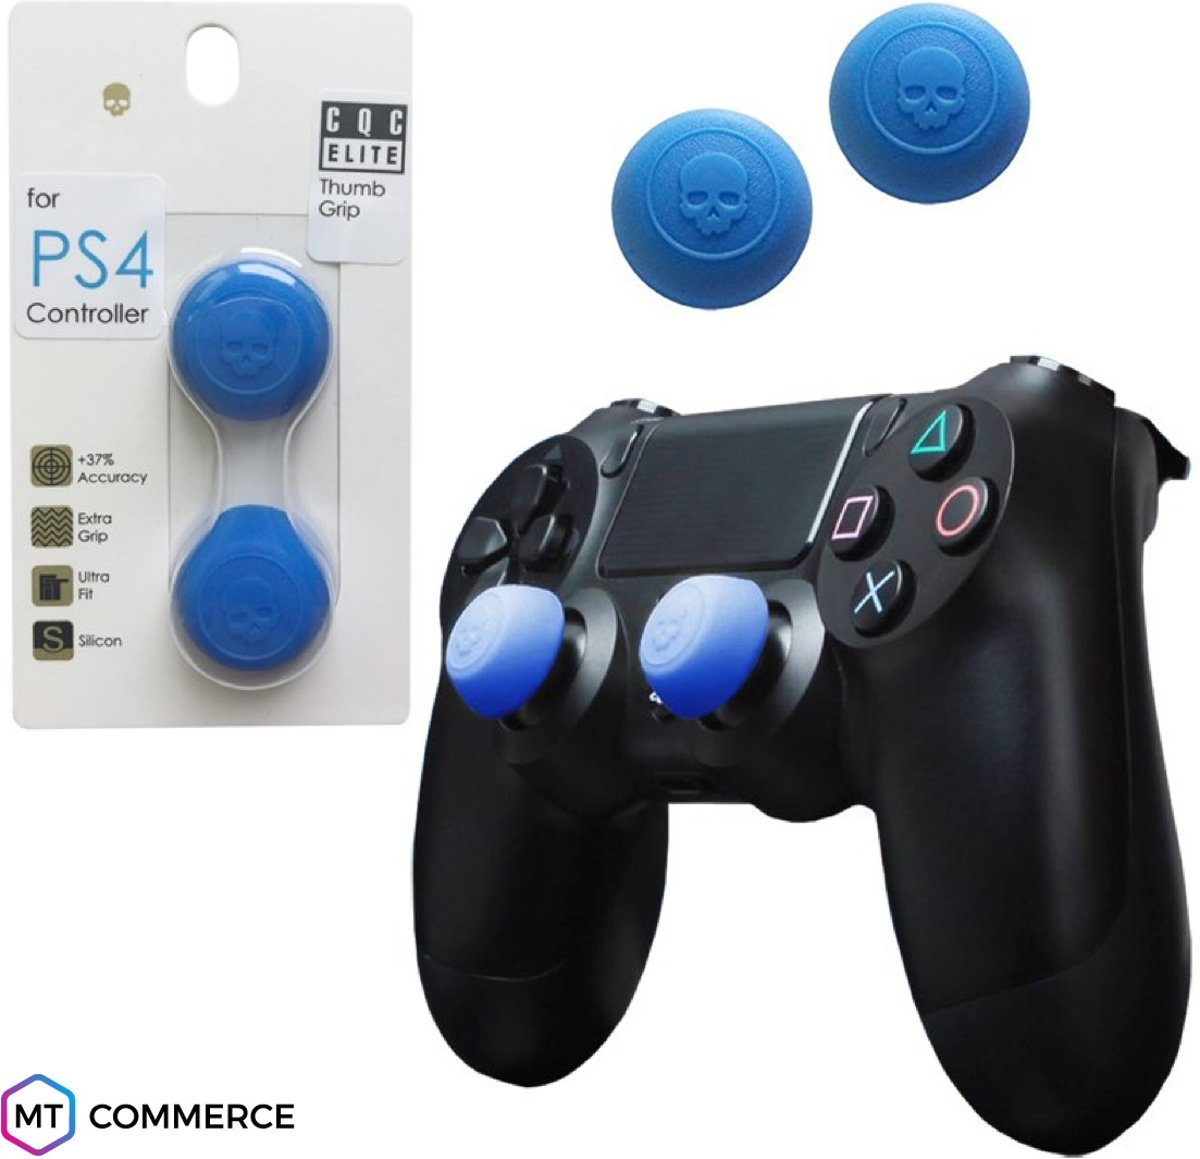 CQC Elite thumbsticks voor PS4 - PlayStation Controller Thumb Grips - Blauw